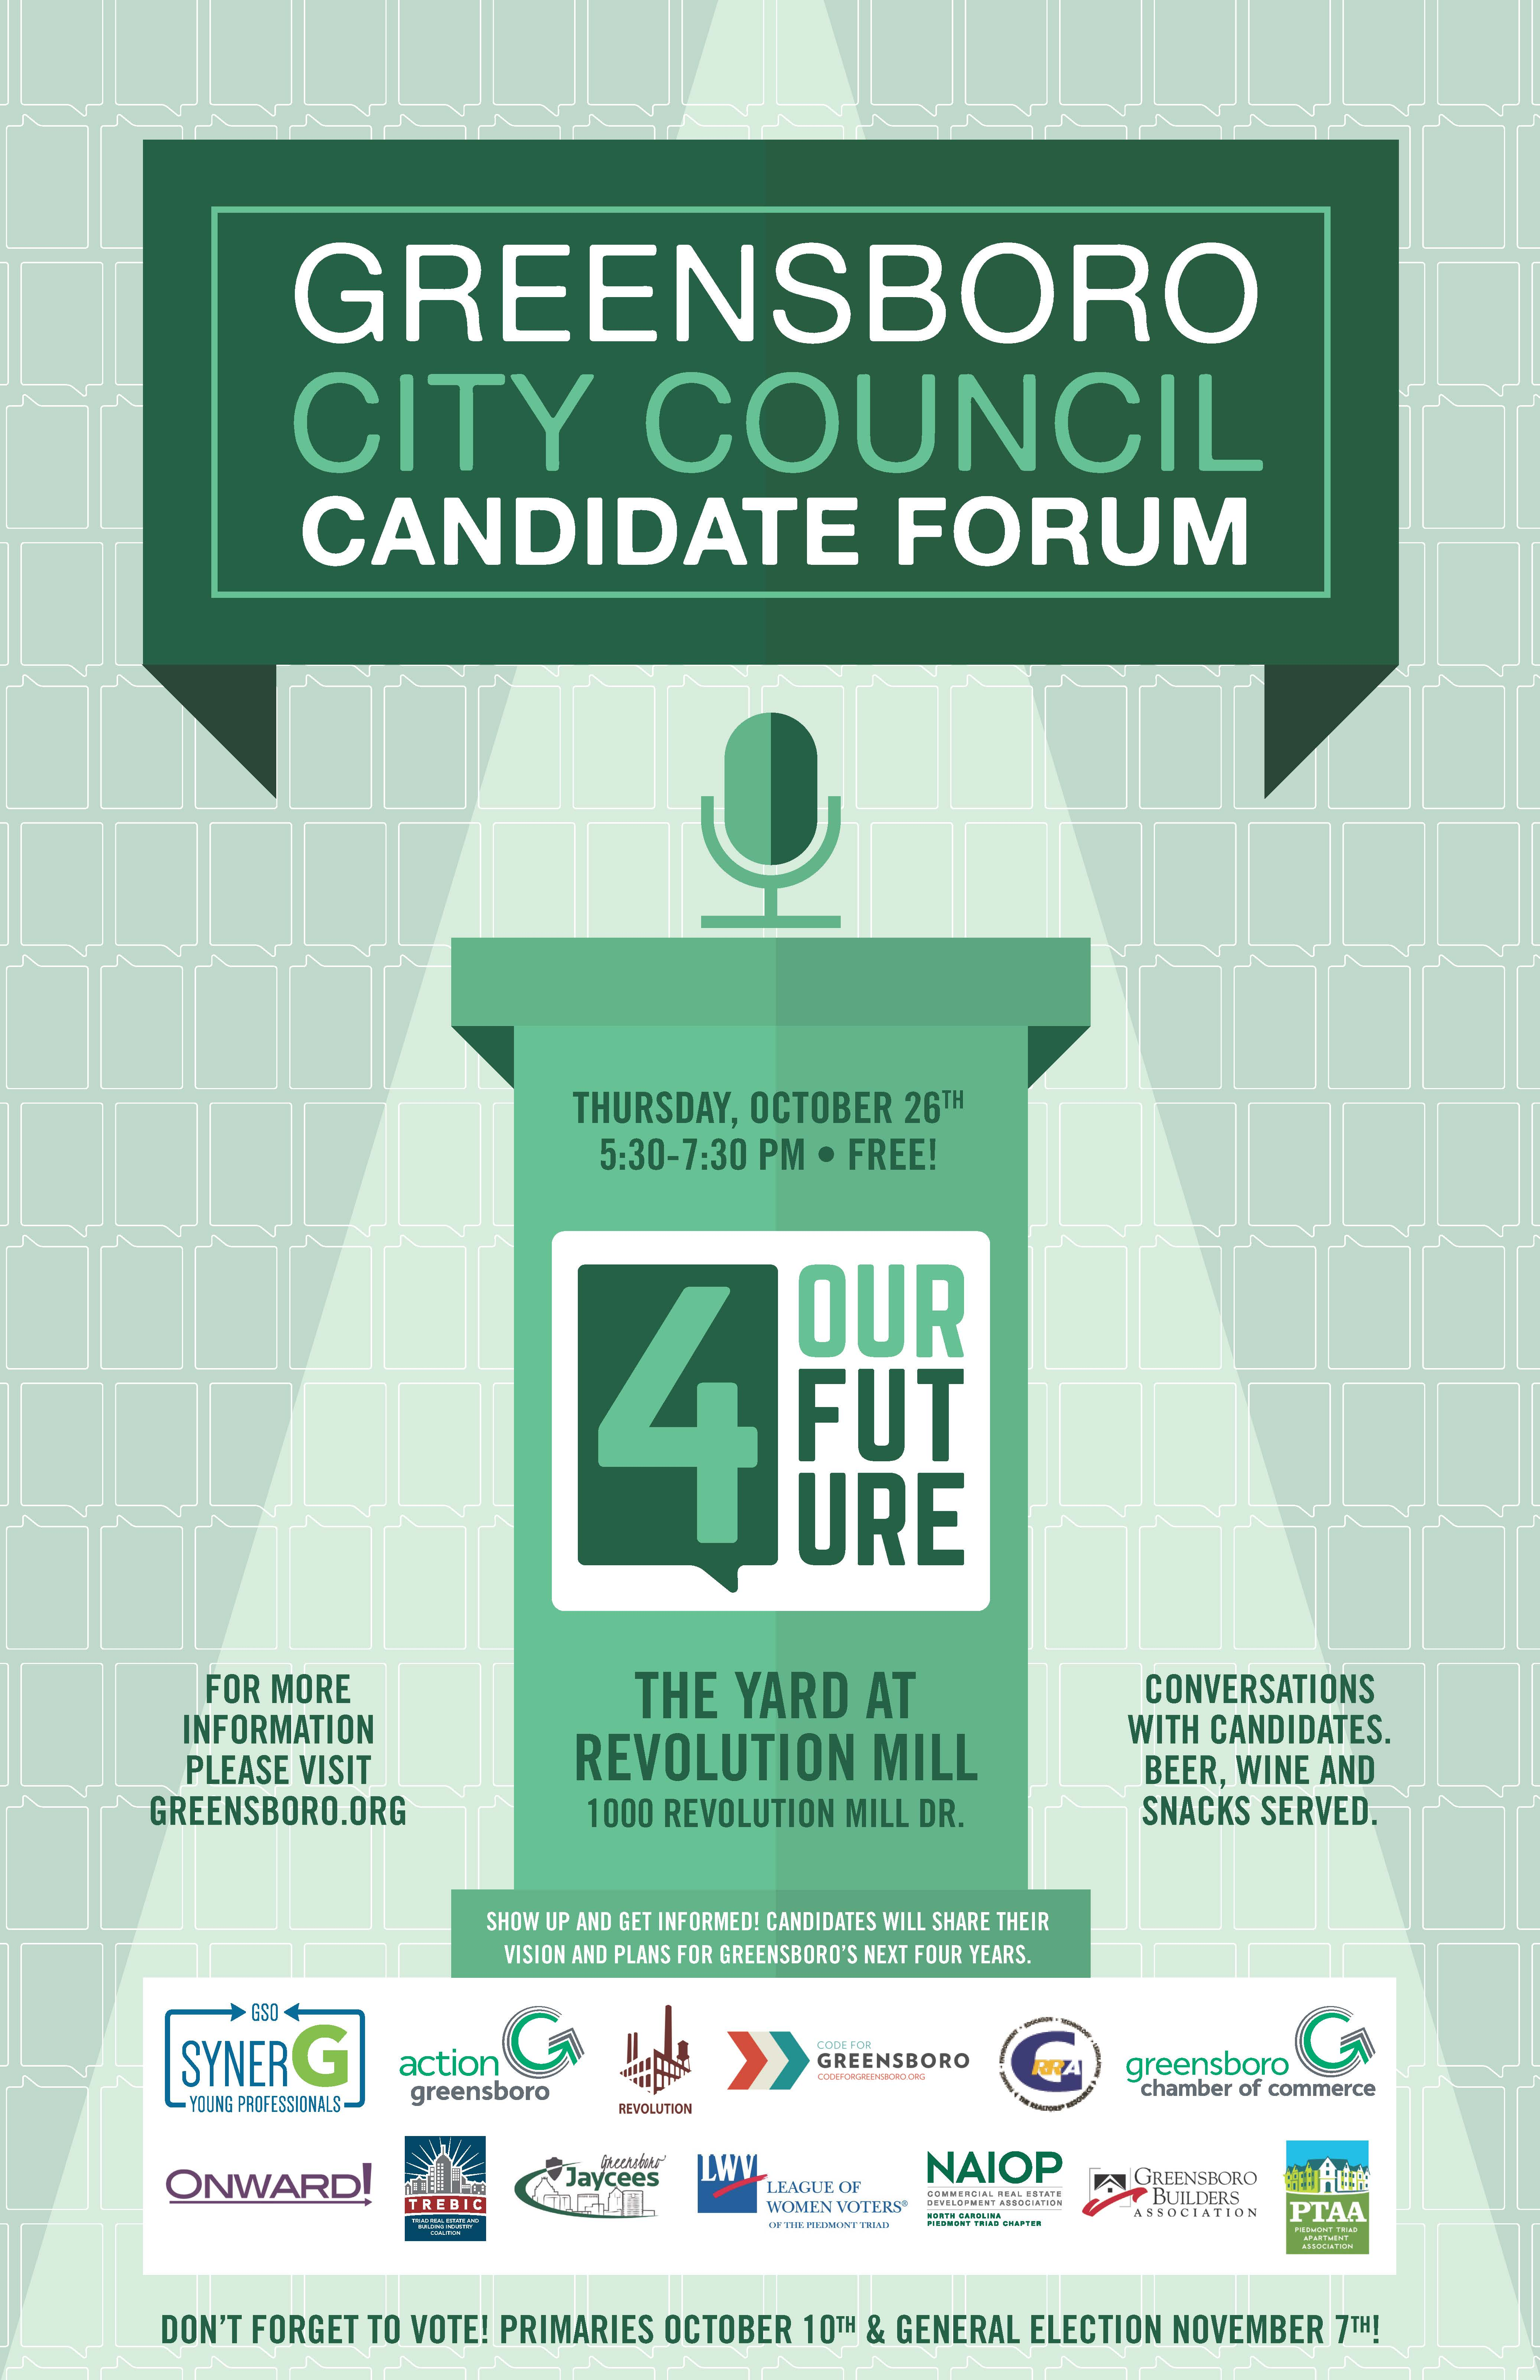 4 Our Future, A Greensboro City Council Candidate Forum